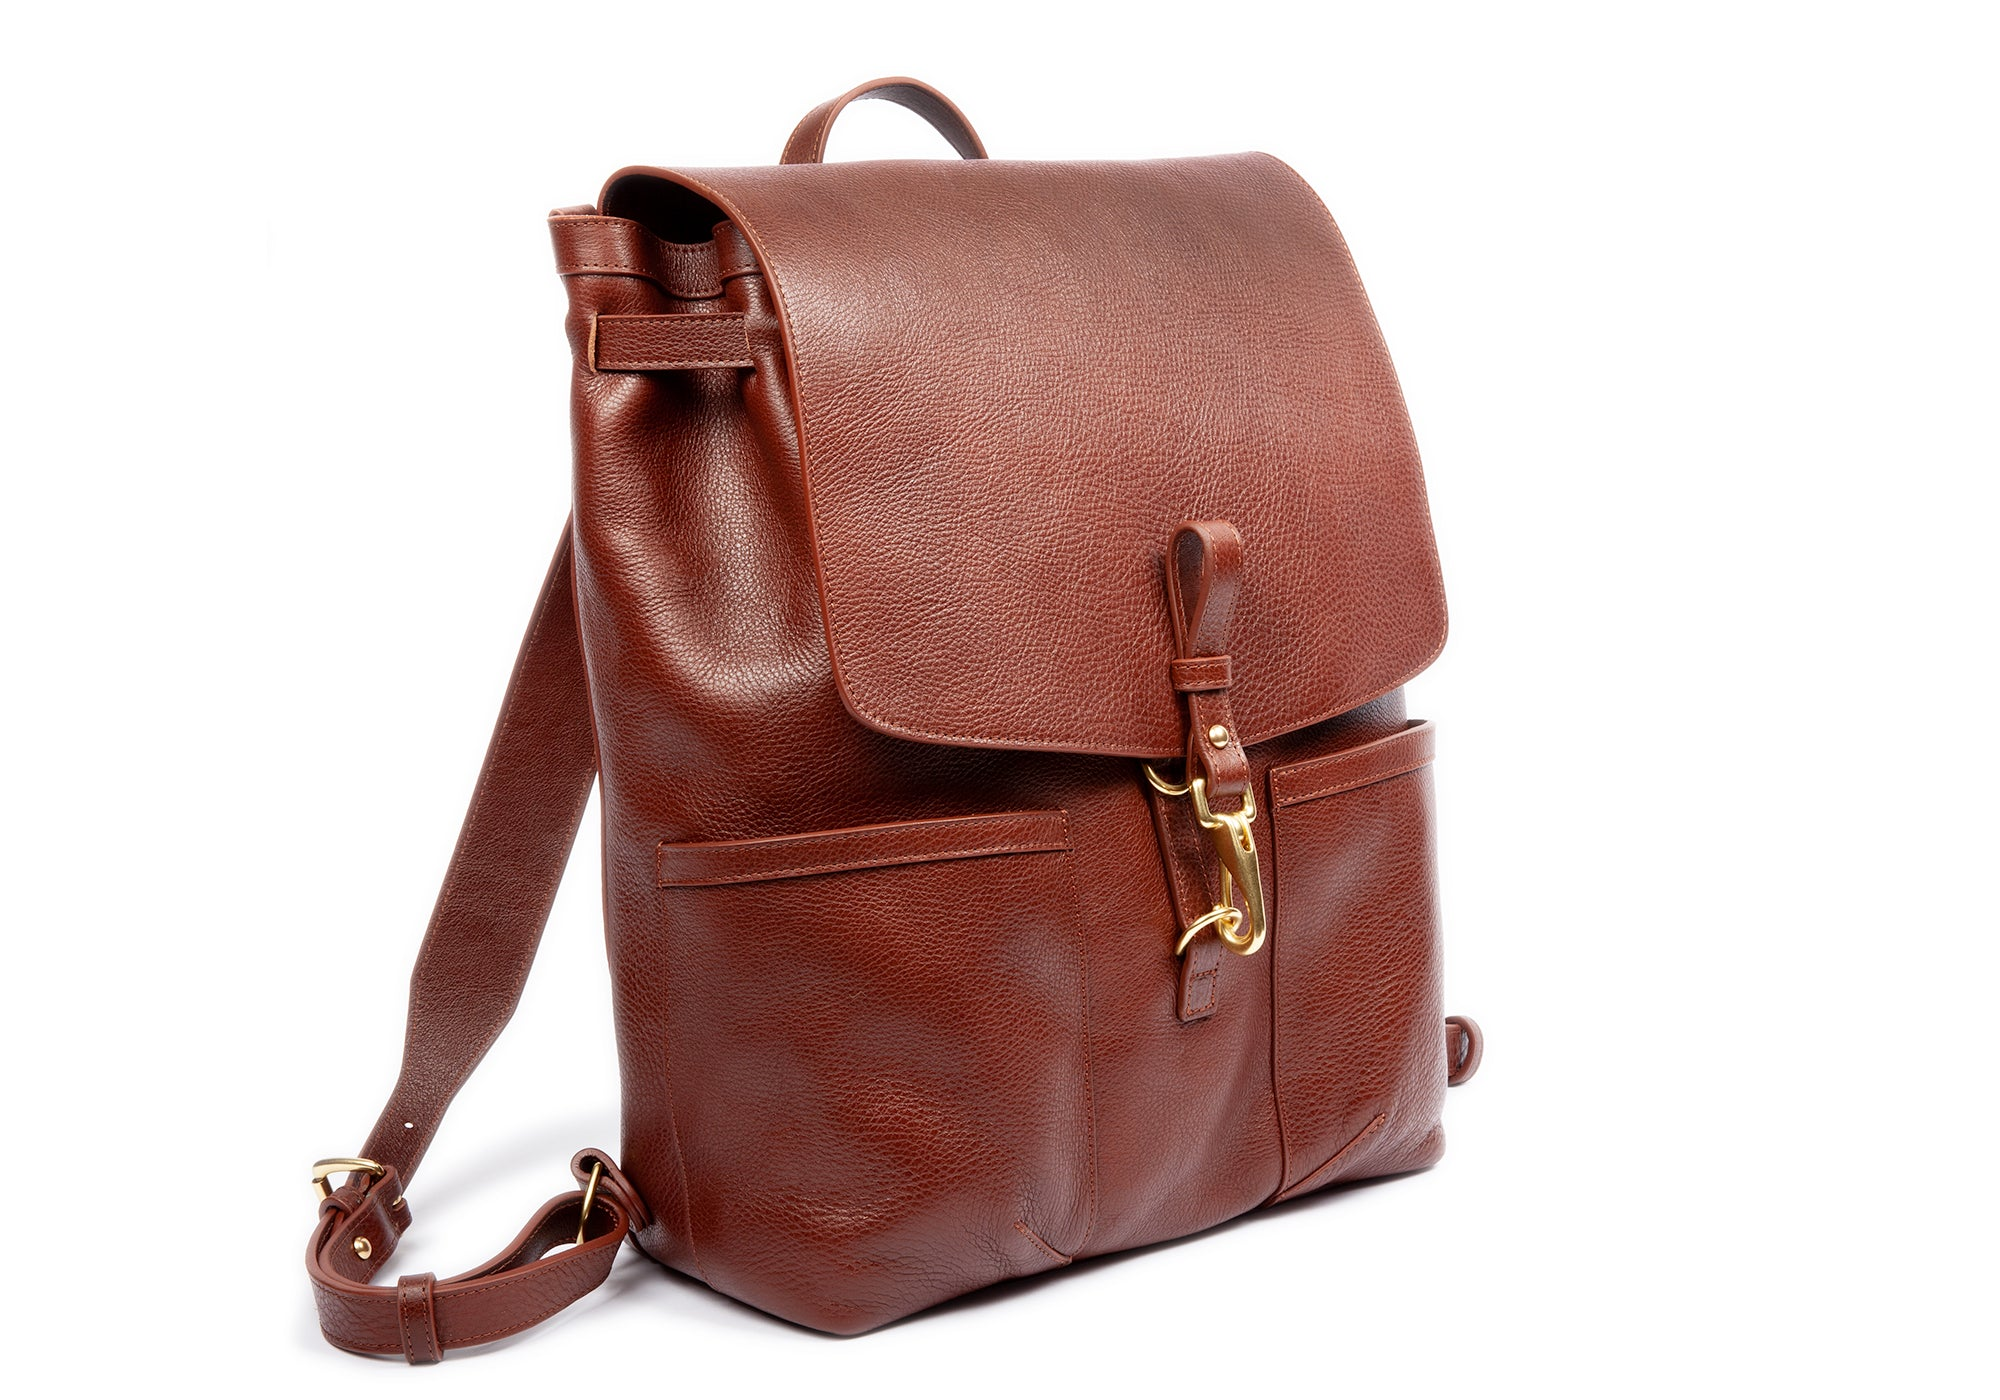 Full Leather Backpack View of Leather Knapsack Chestnut